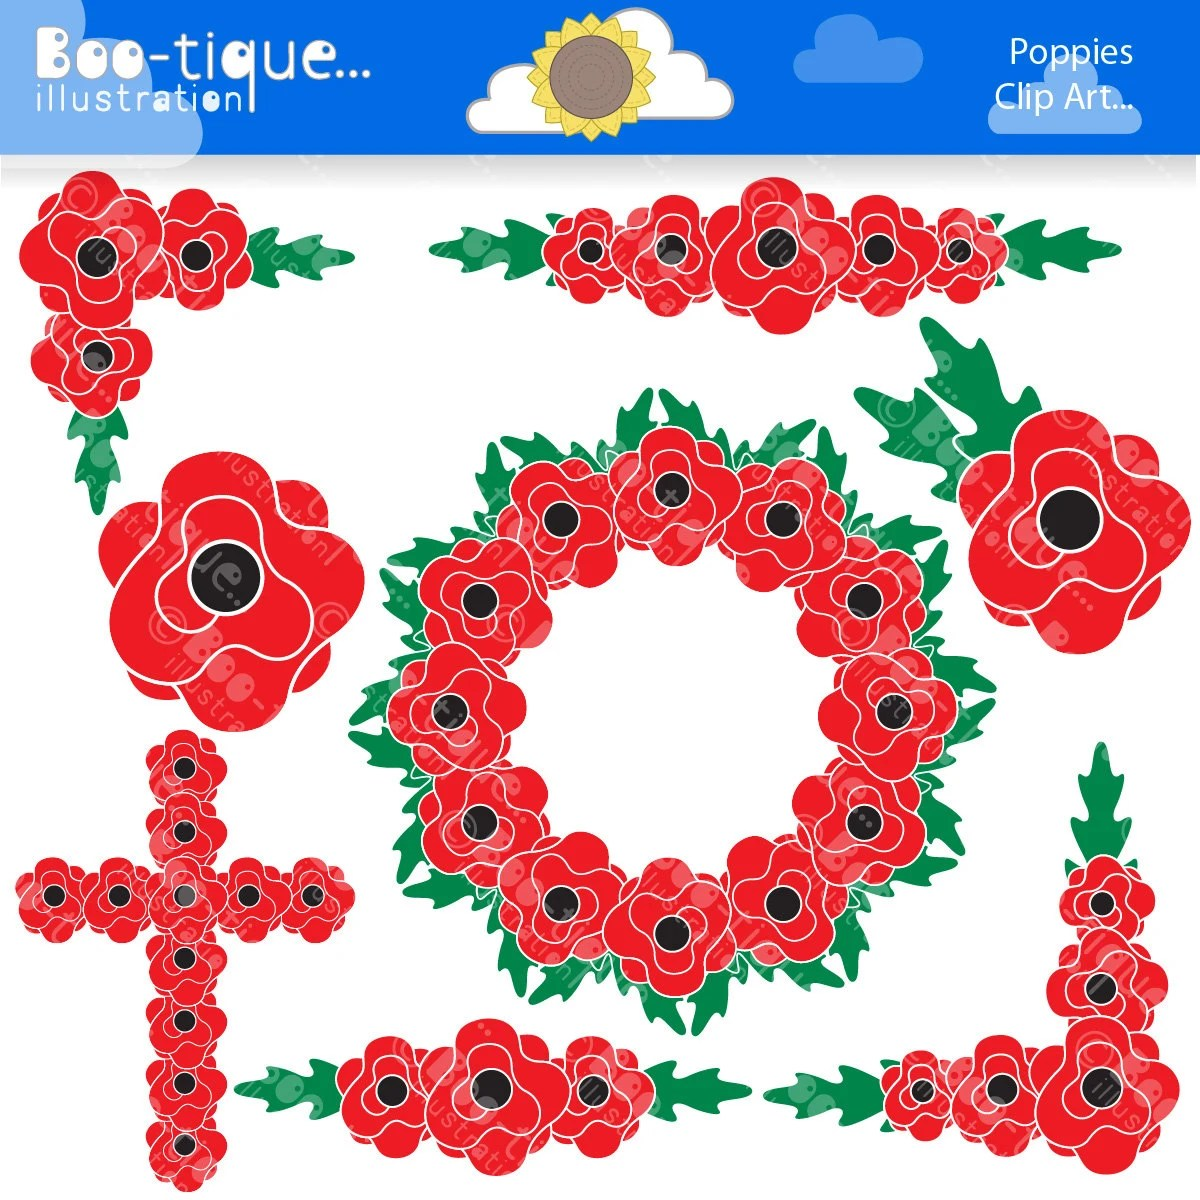 hight resolution of poppies digital clpart poppy clipart poppies clip art remembrance sunday clipart veterans day clipart poppy clip art poppies clipart